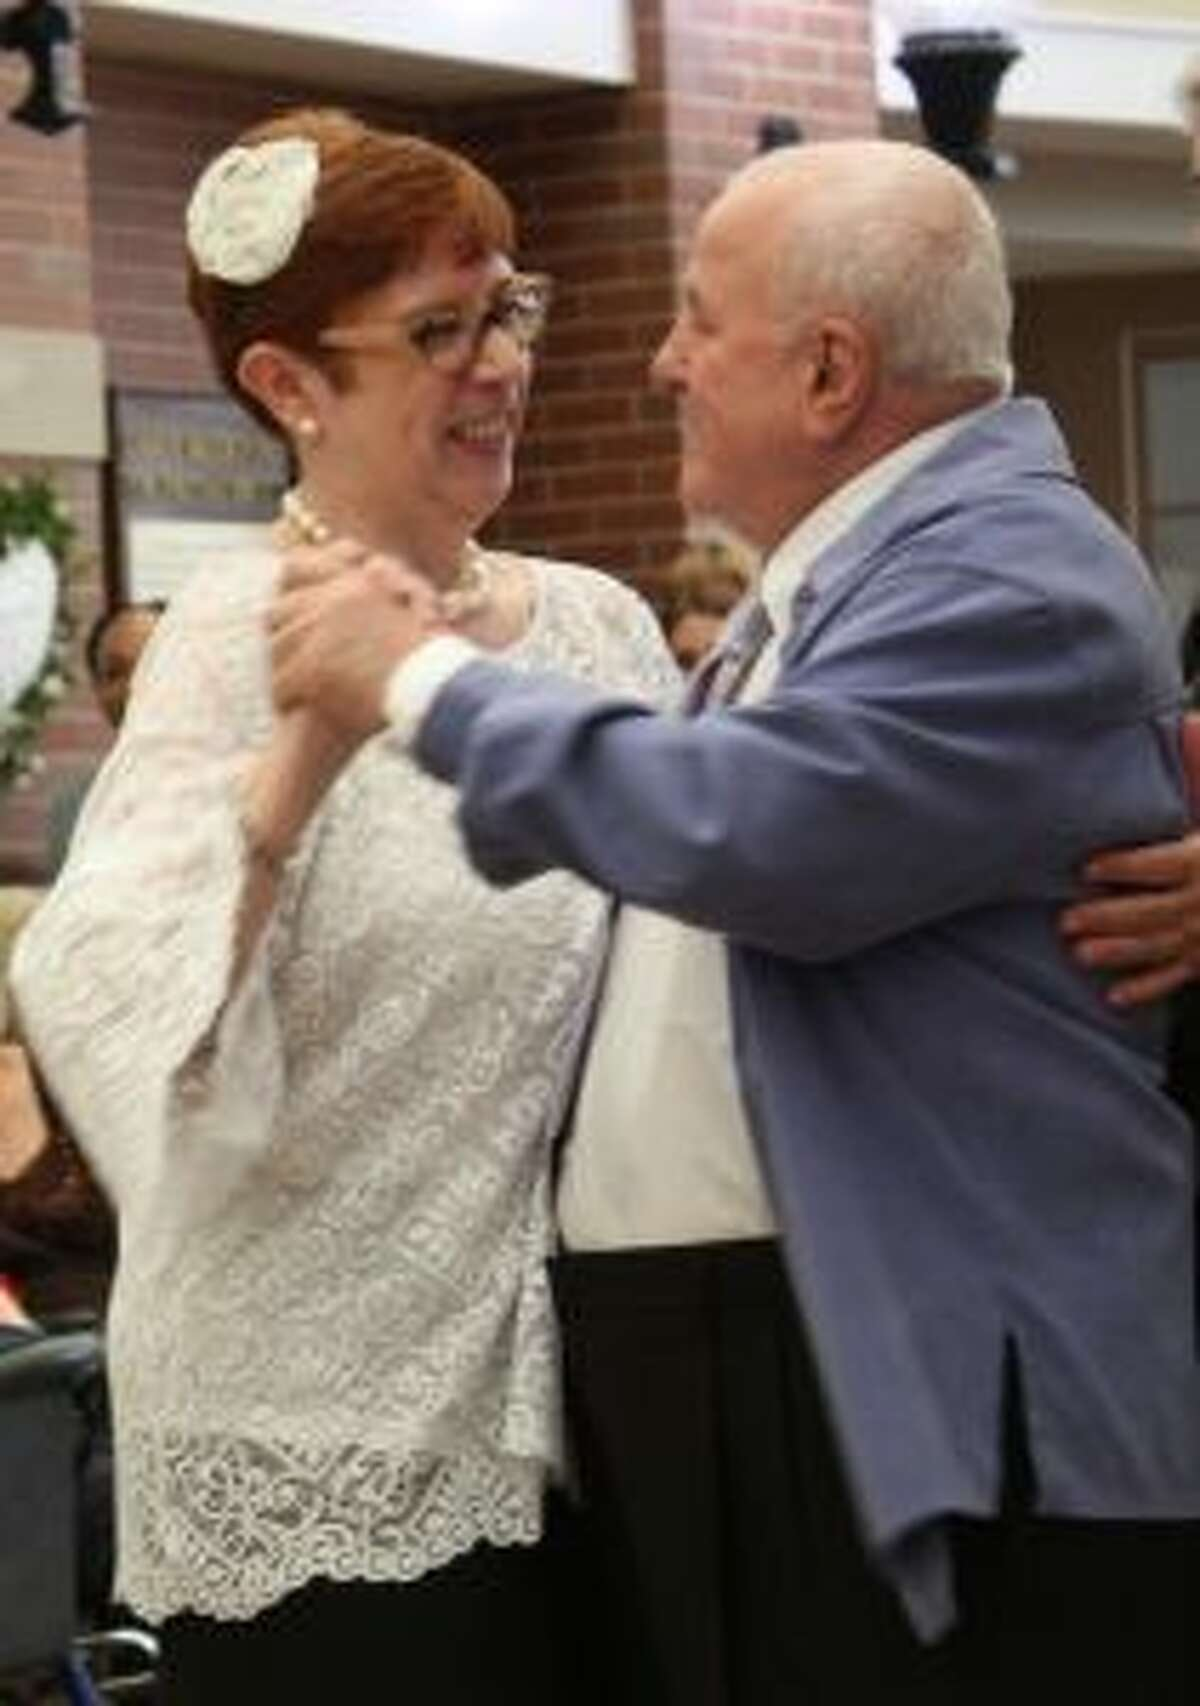 JoAnn Labare and Stefan Antohi dance at their recent wedding renewal celebration at Waveny LifeCare Network. - Contributed photo